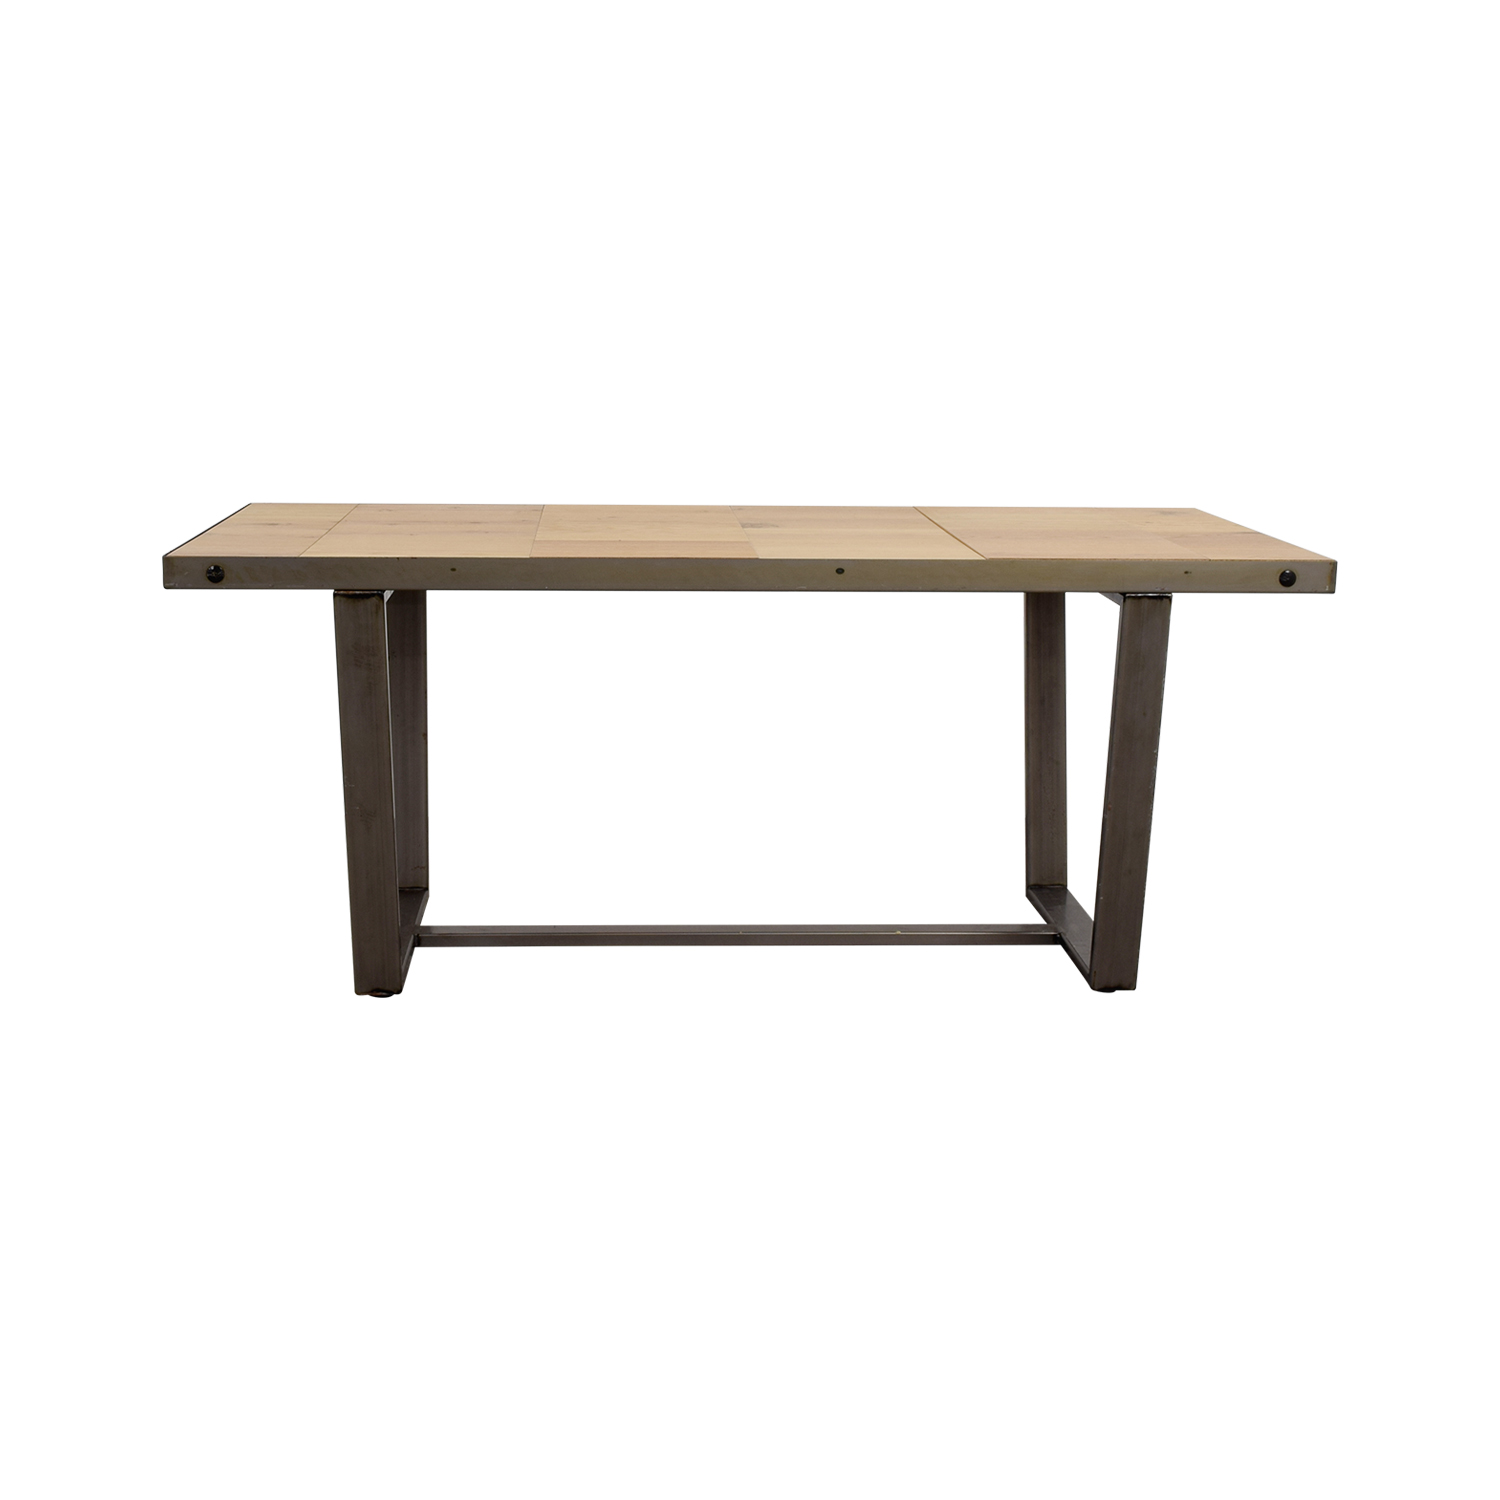 Patrick Cain Patrick Cain Beech and Metal Dining Table